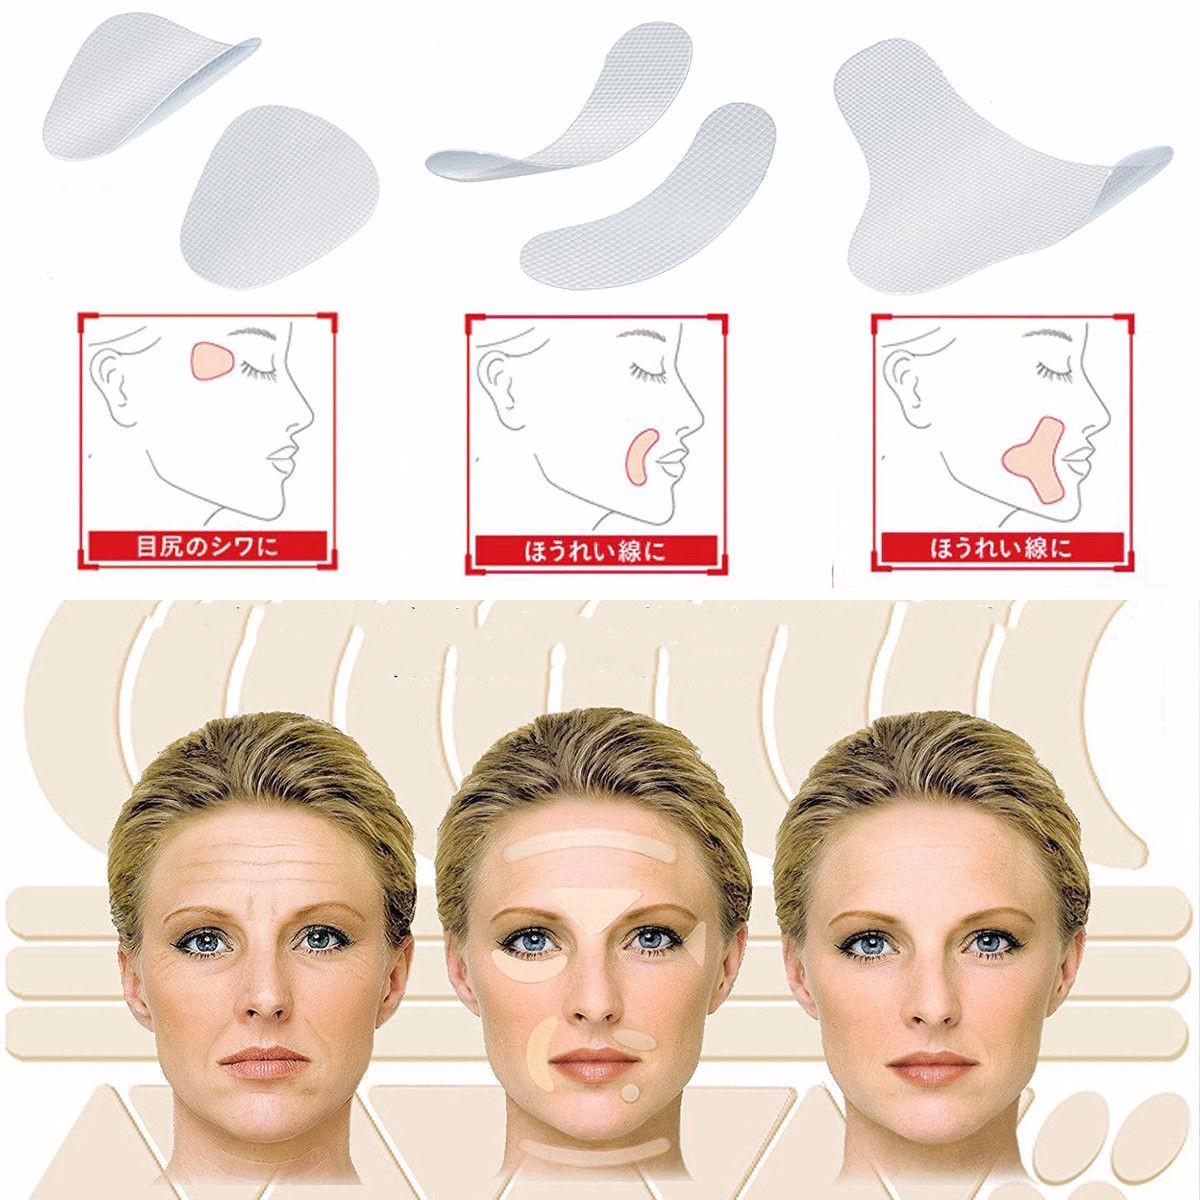 Women Facial Line Wrinkle Sagging Skin Lift Up Tape Frown Smile Lines V-Shape Face Fast Lift Up Makeup Face Wrinkle Remove Tools